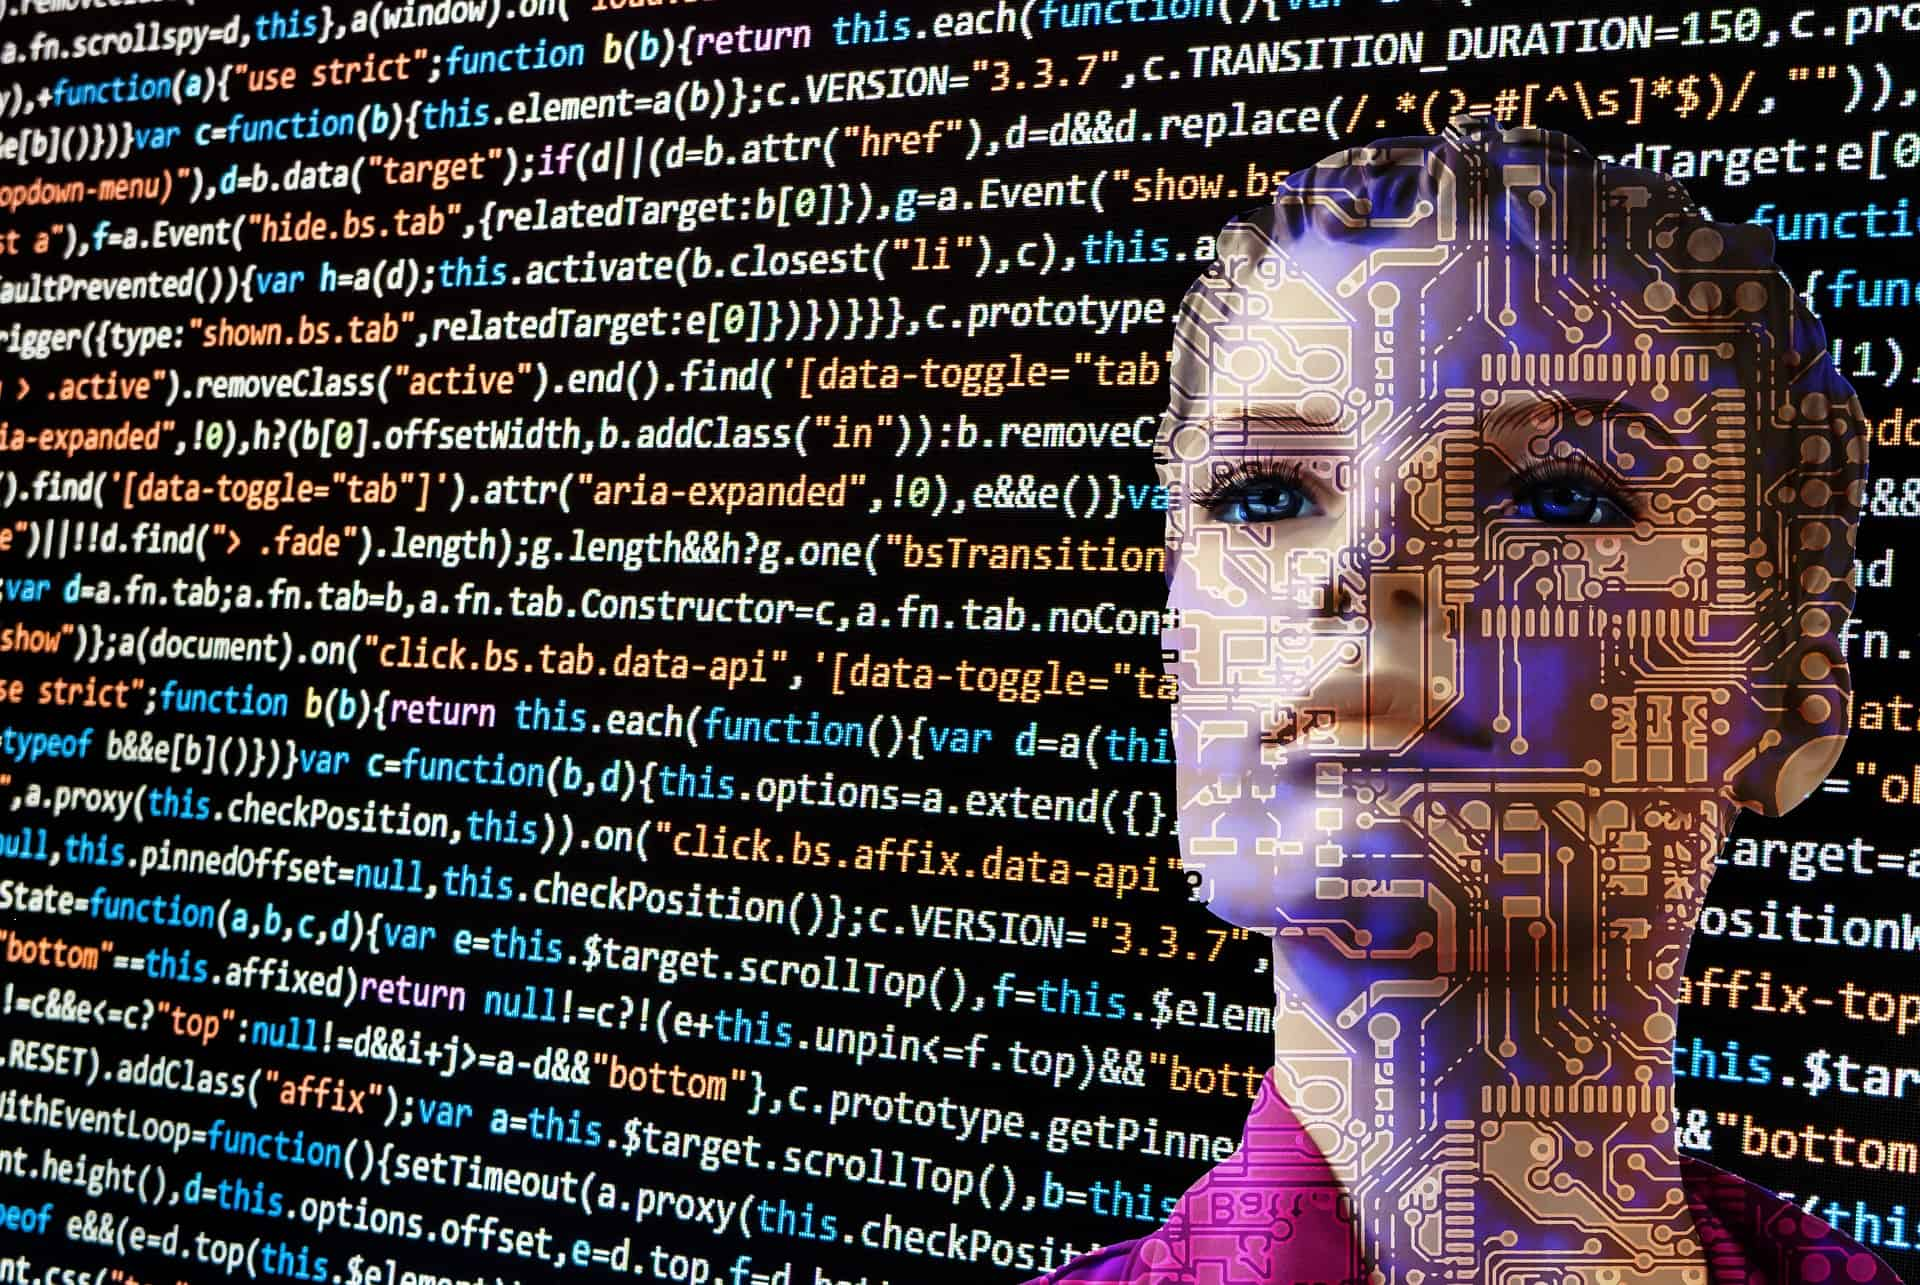 Advantages Of Implementing AI In Web Development